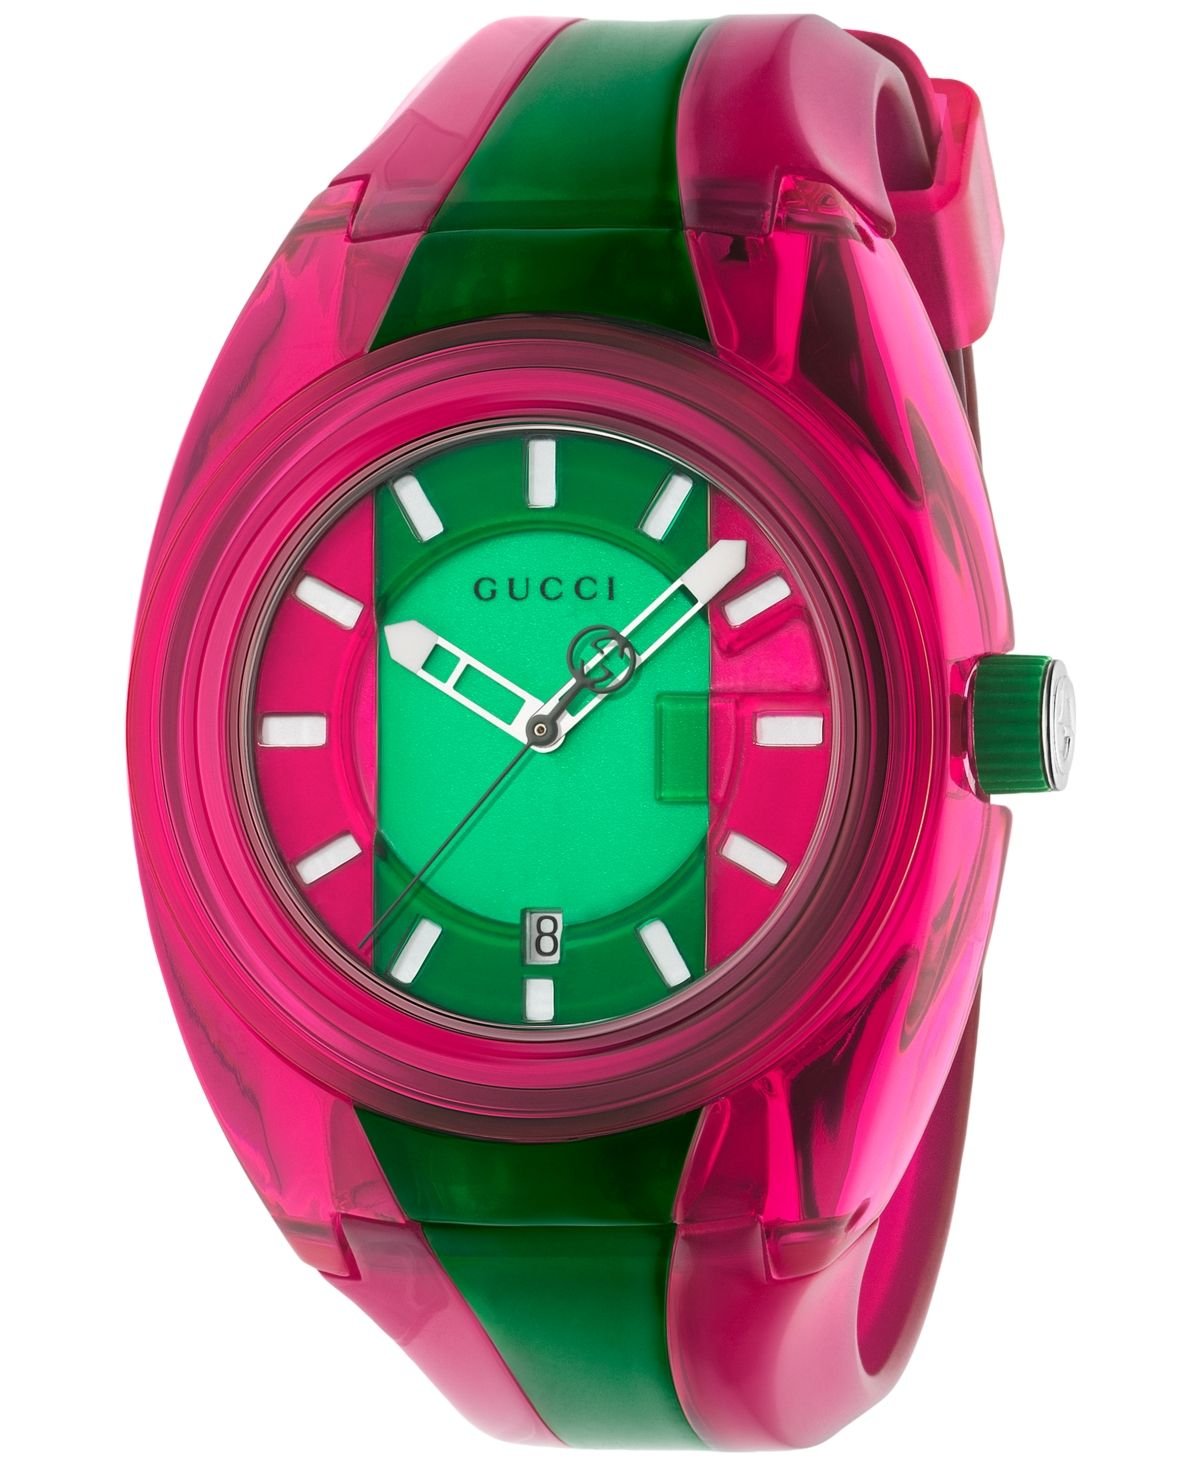 Gucci Unisex Swiss Sync Pink & Green Rubber Strap Watch